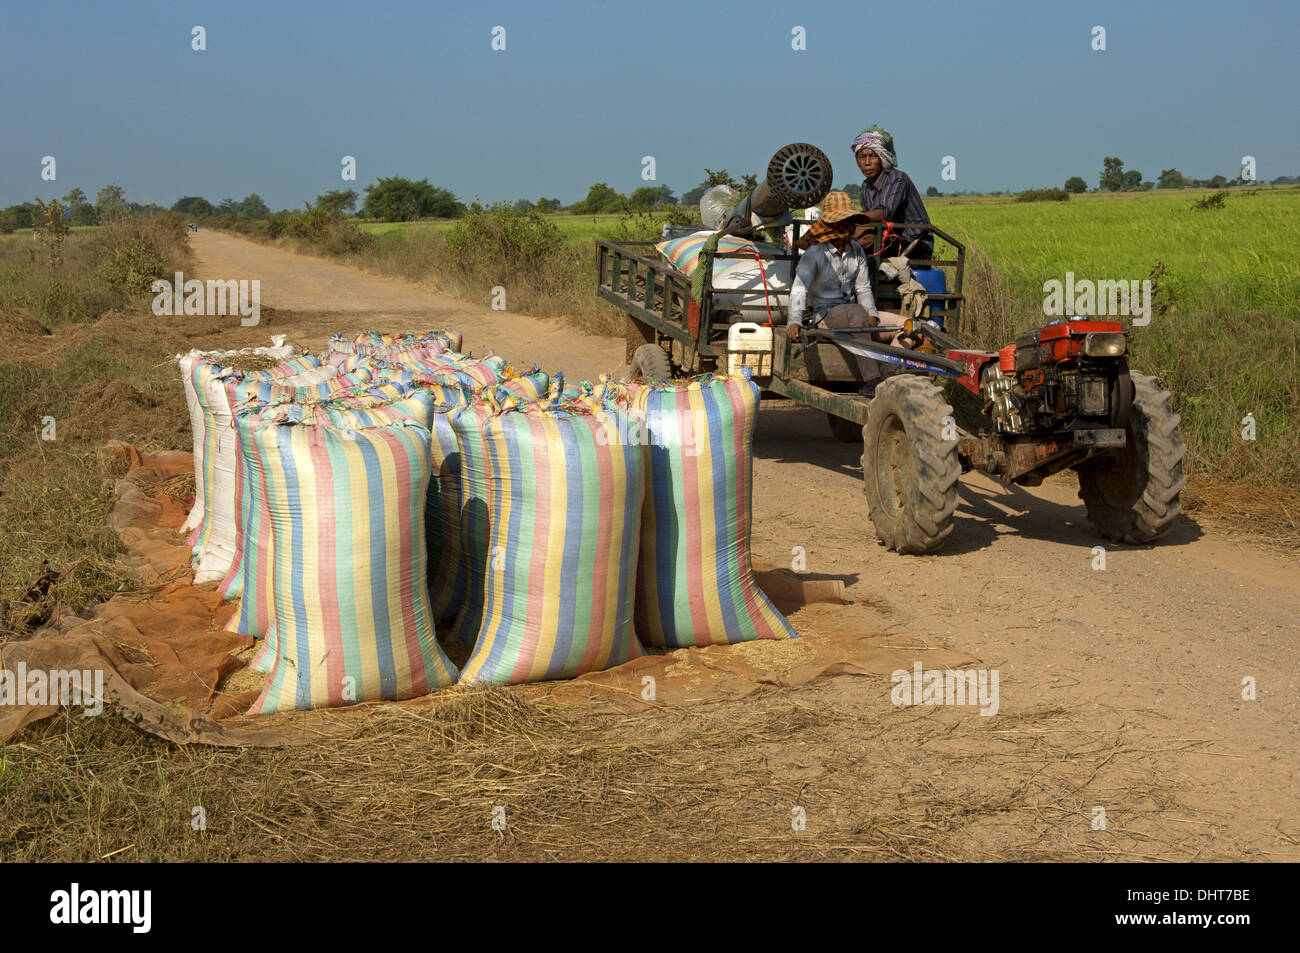 Bulging rice bags by the roadside, Cambodia Stock Photo